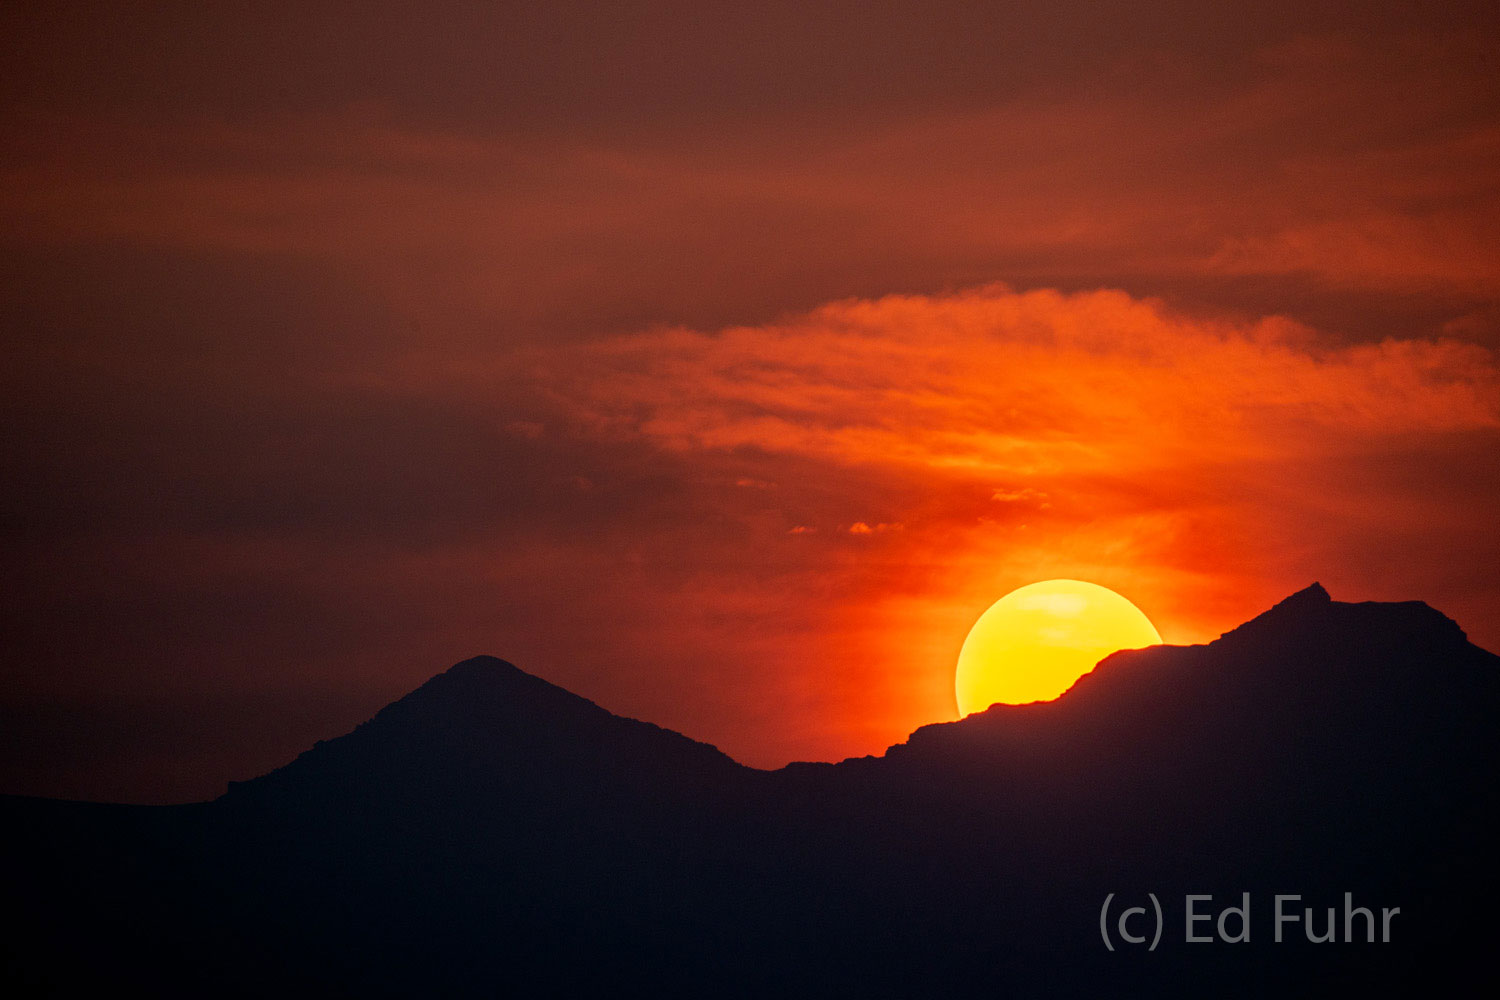 The sun sets over Rendezvous mountain in the Teton Range, through the smoke and haze from California's wildfires